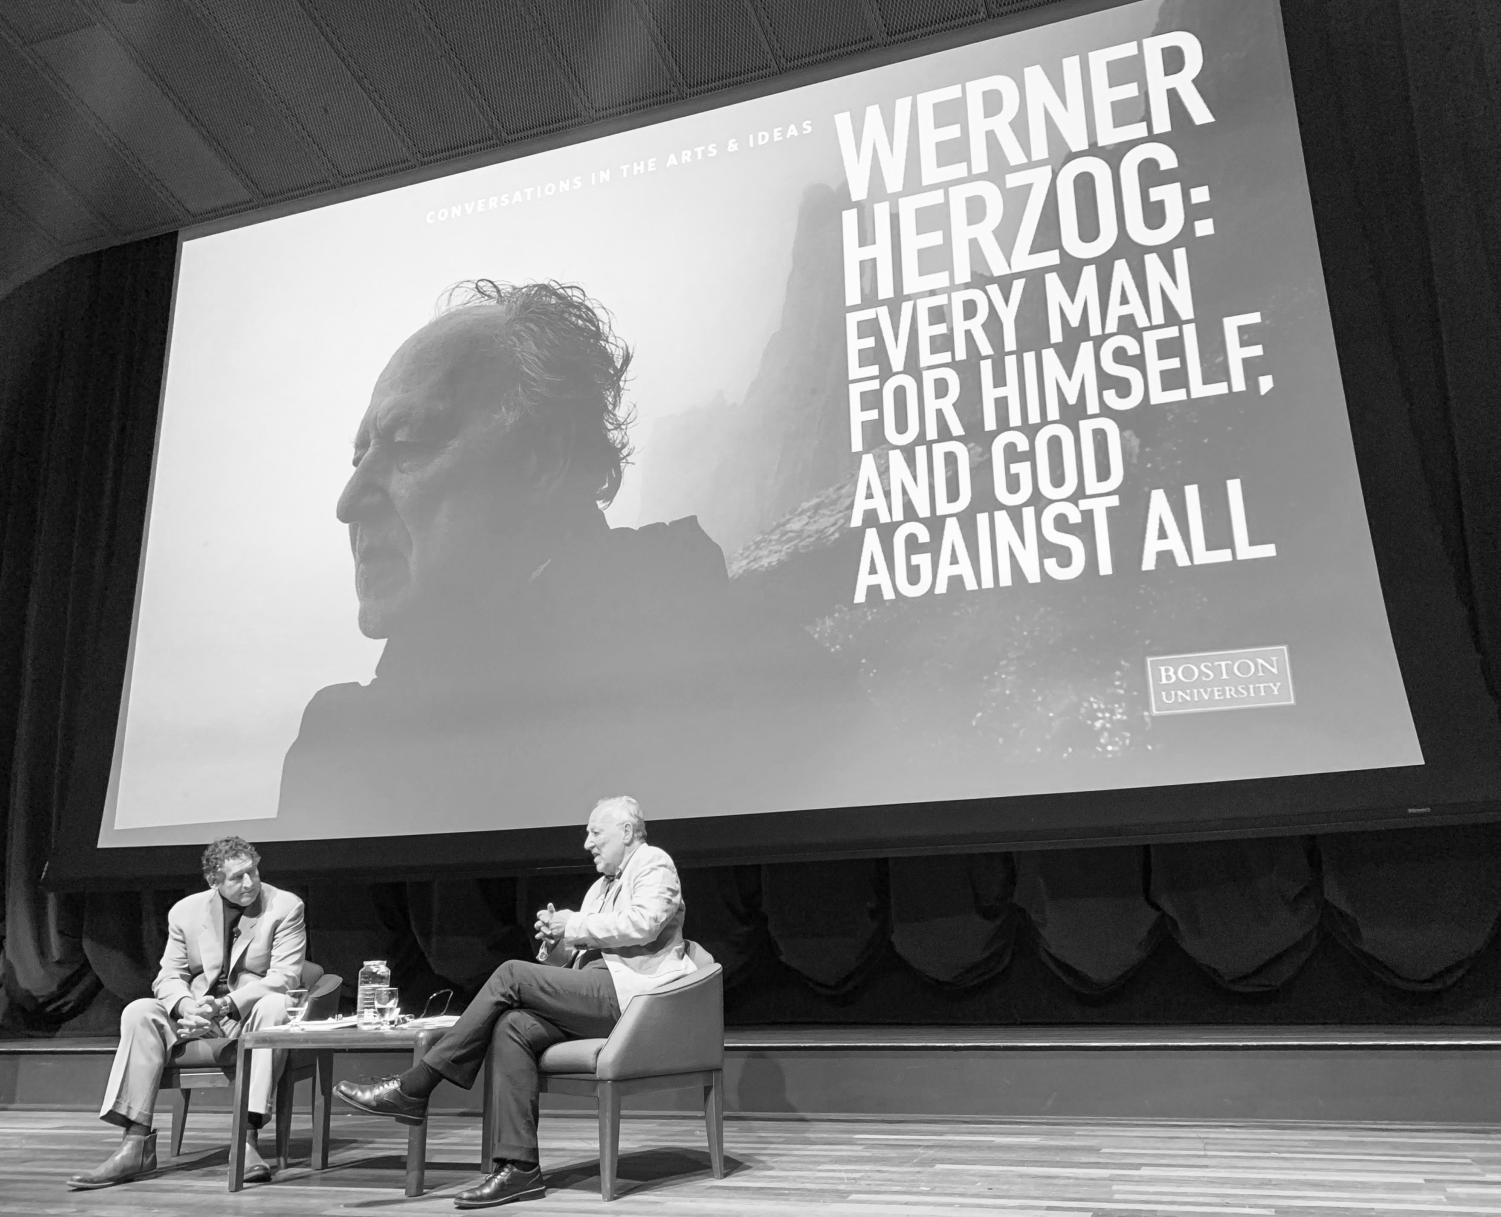 Herzog being interviewed by Golder